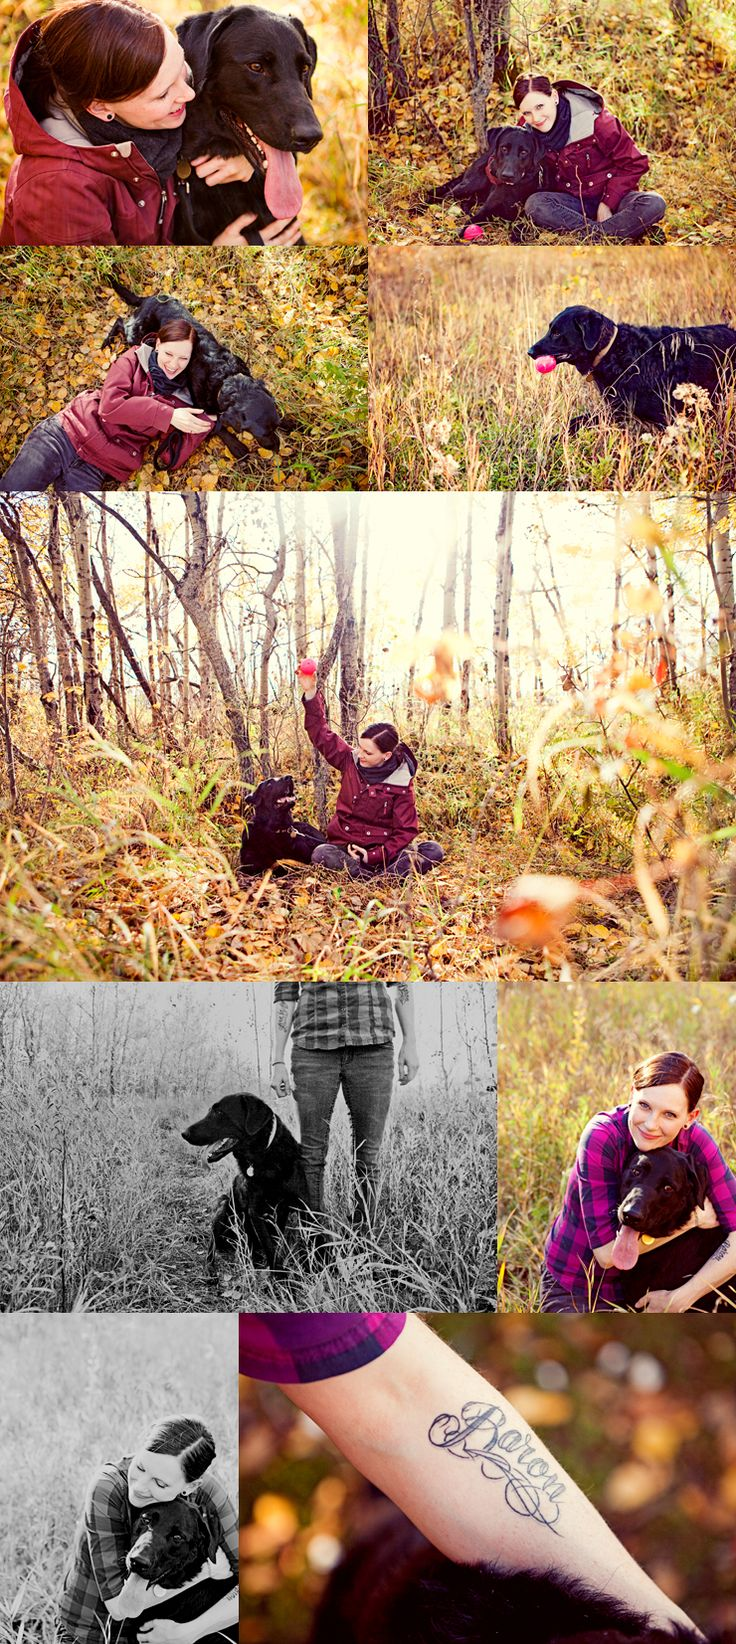 Awesome! I've gotta do this with Bear and Hannah:)